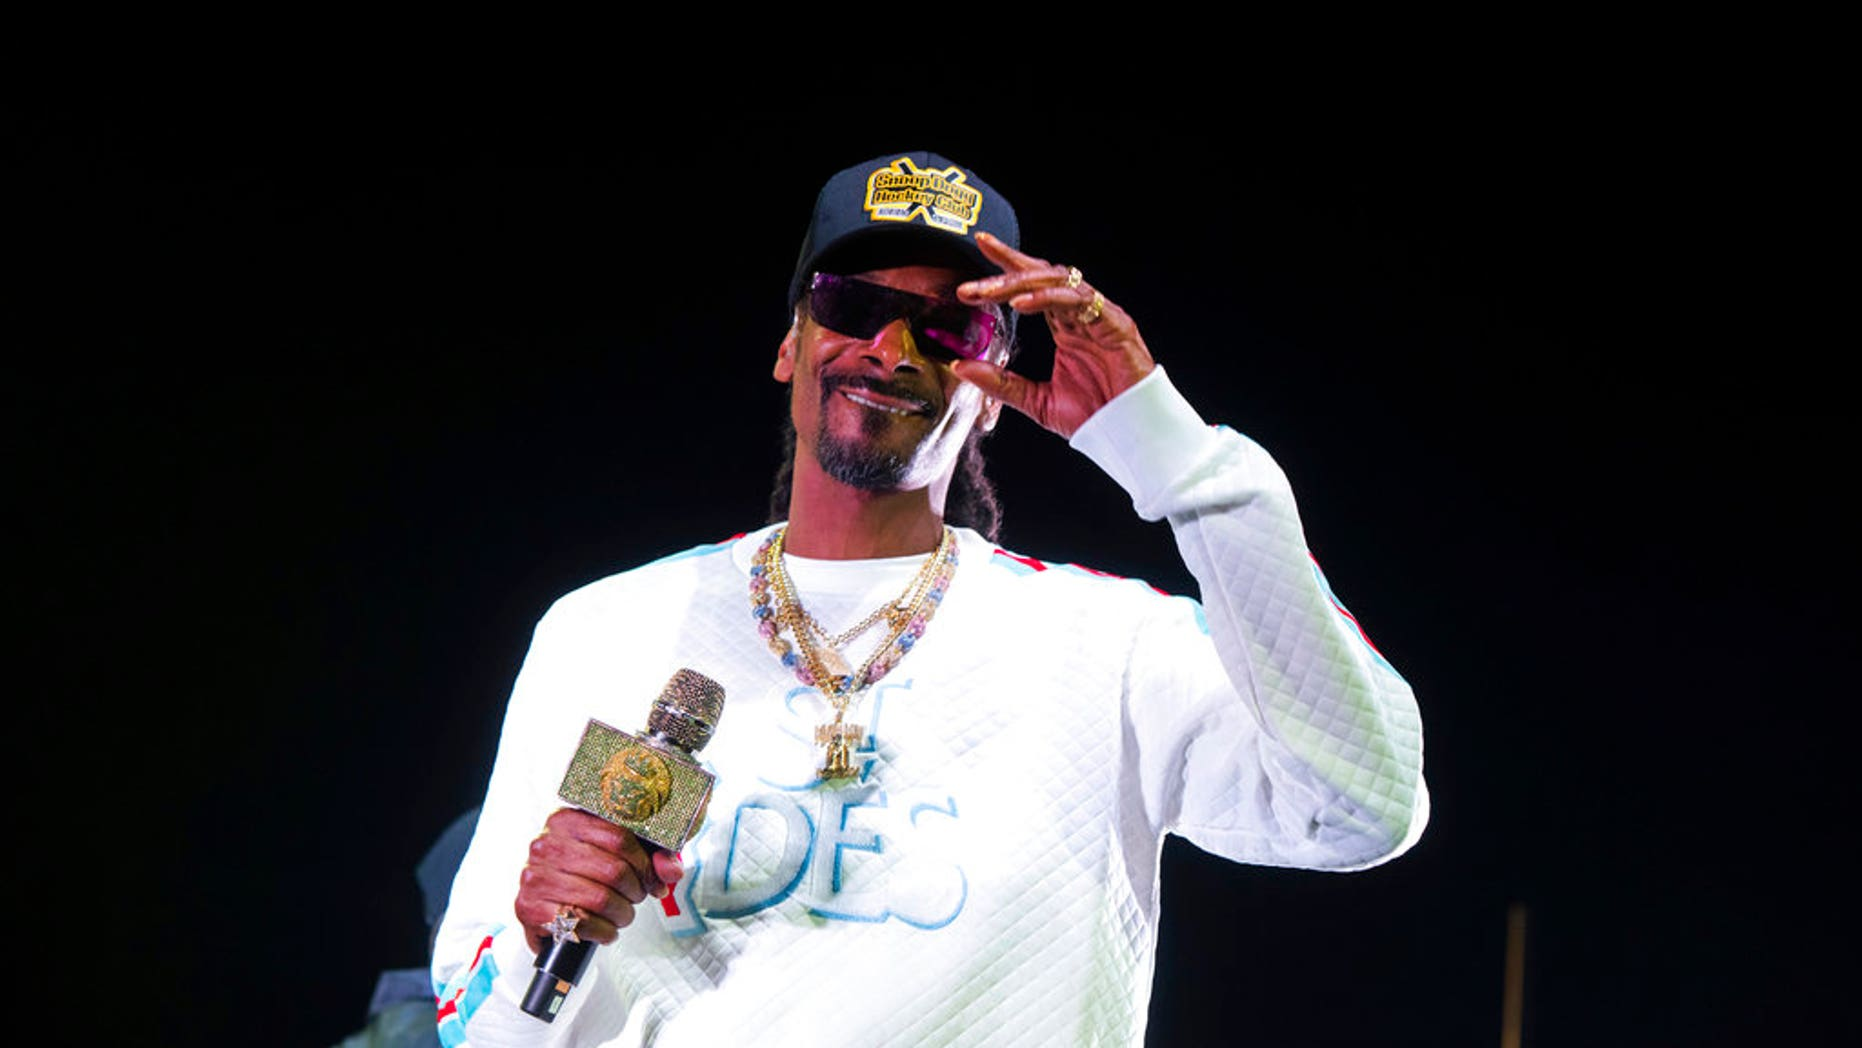 Snoop Dogg performs onstage at State Farm Arena on Saturday, Jan. 5, 2019, in Atlanta. (Photo by Paul R. Giunta/Invision/AP)